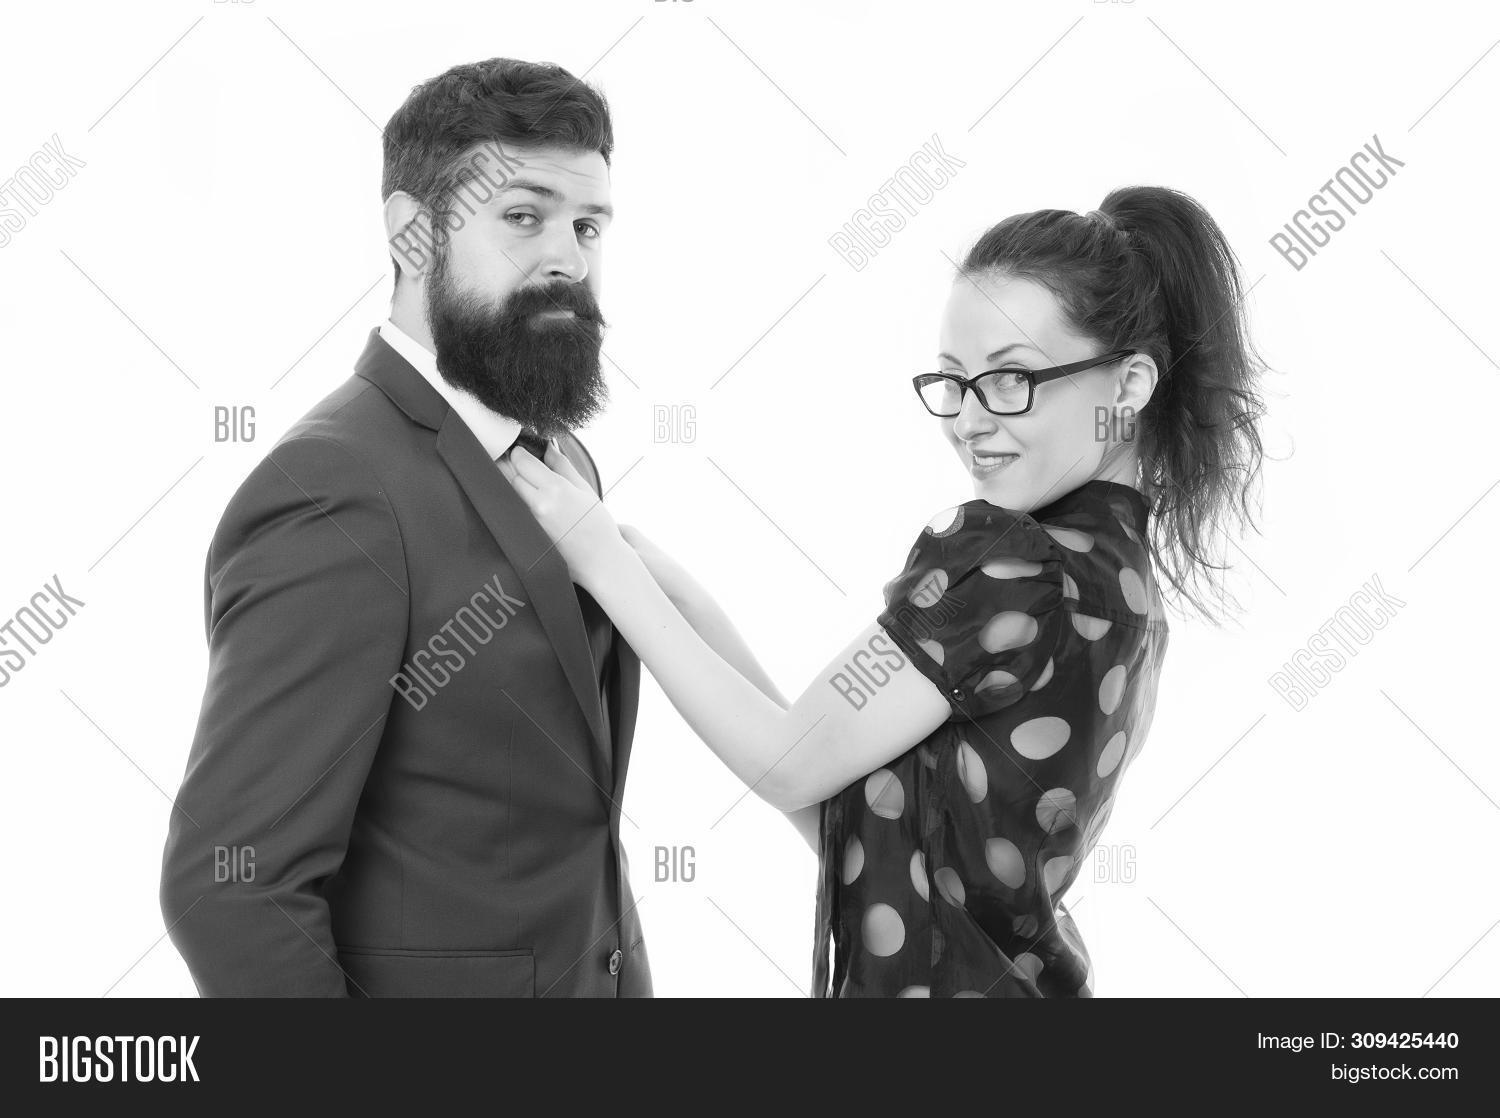 Help each other look perfect. Business partners man and woman adjust outfit before business conference or meeting. Boss and attractive lady assistant white background. Last detail. Business relations.